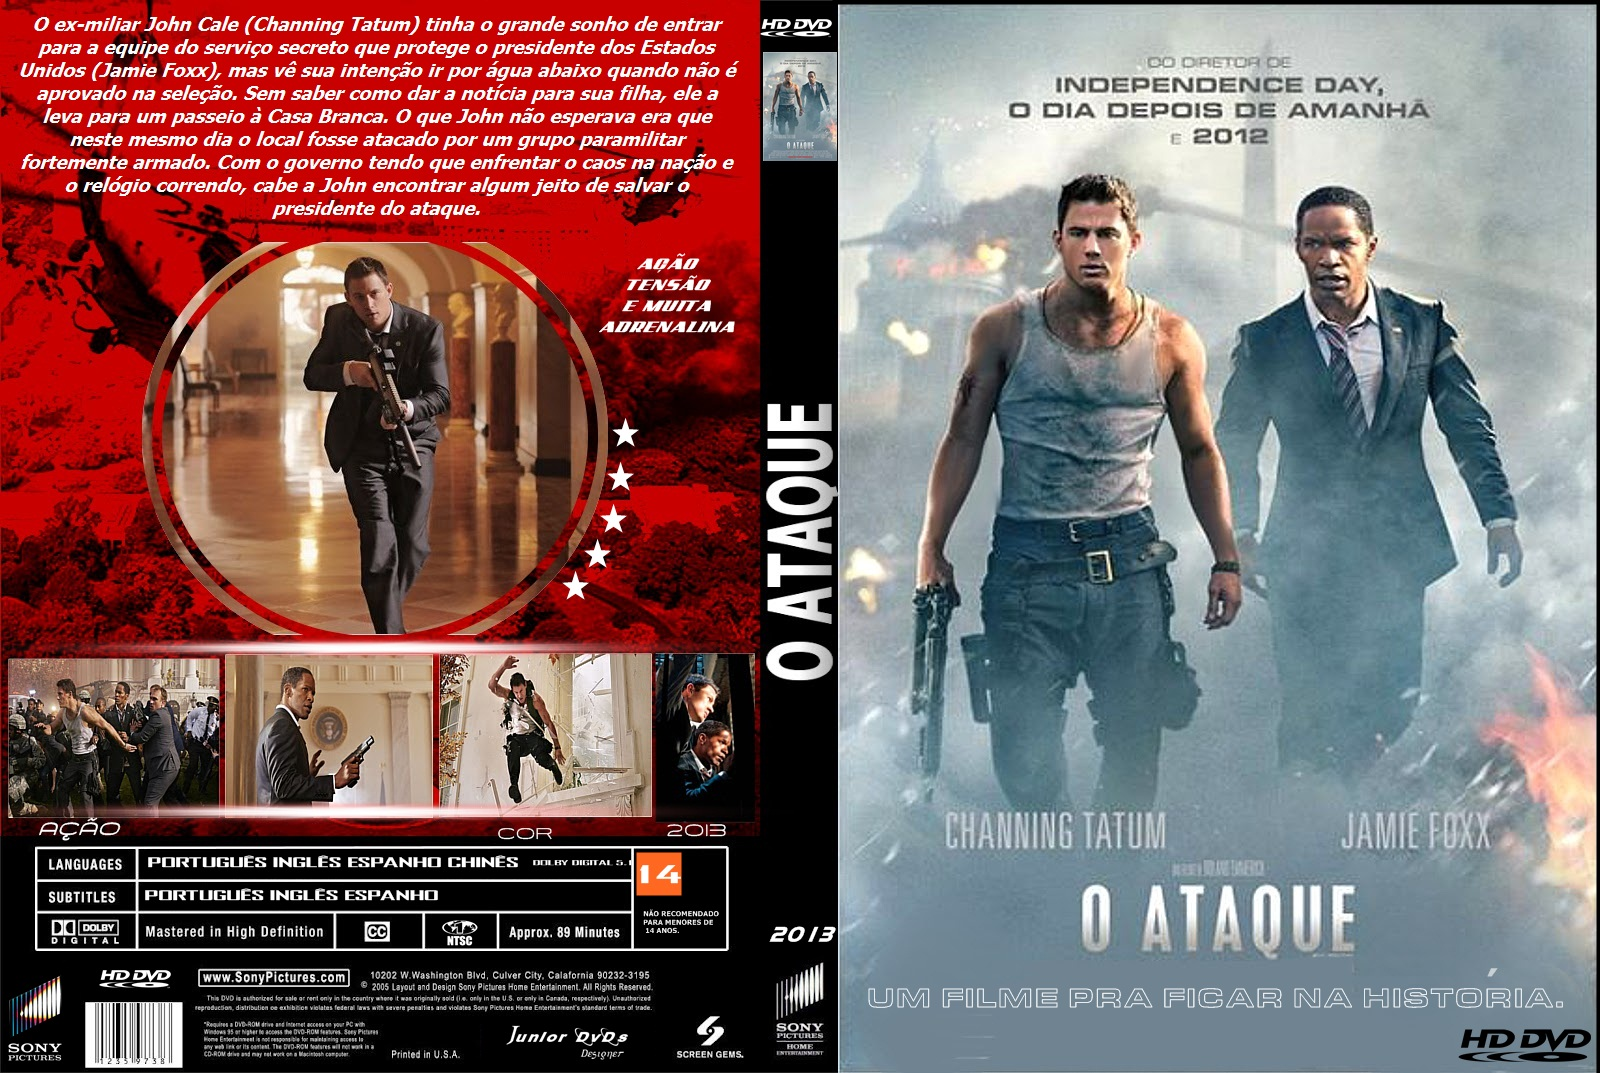 O Ataque DVD-R CAPA DO FILME O ATAQUE   JUNIOR DVDS DESIGNER